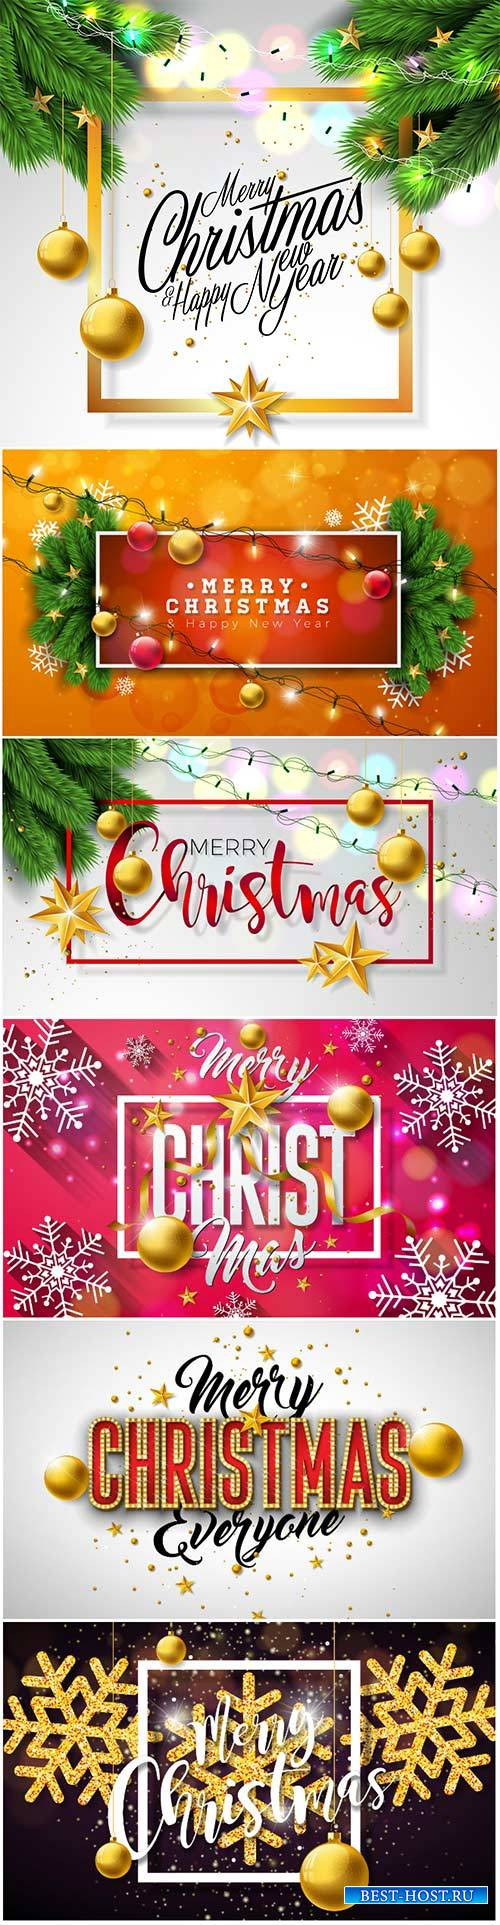 Merry Christmas vector holiday design card, party invitation